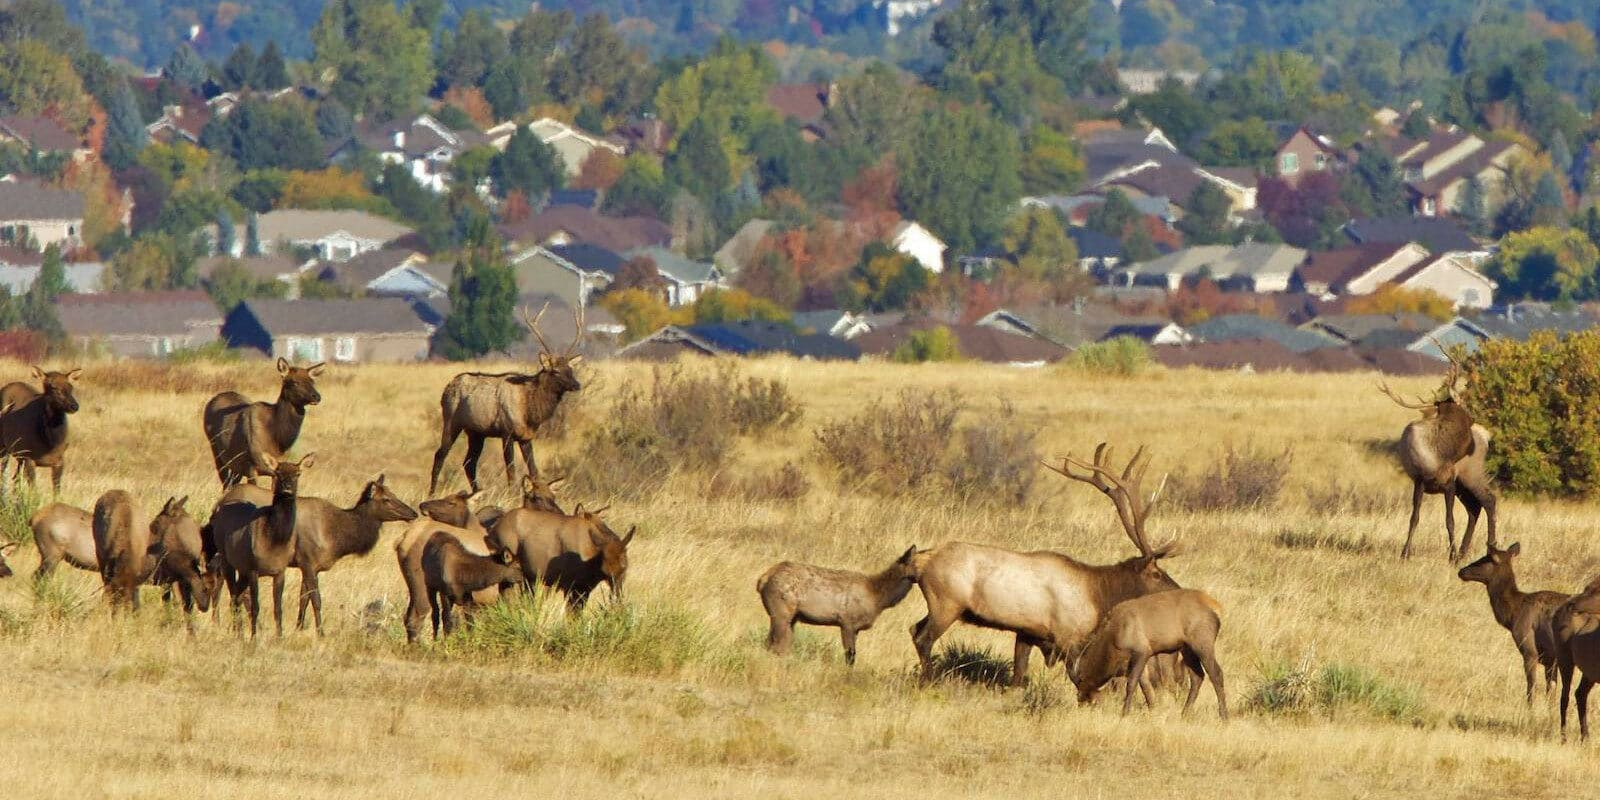 Image of elk in the Highlands Ranch Wilderness Area in Colorado